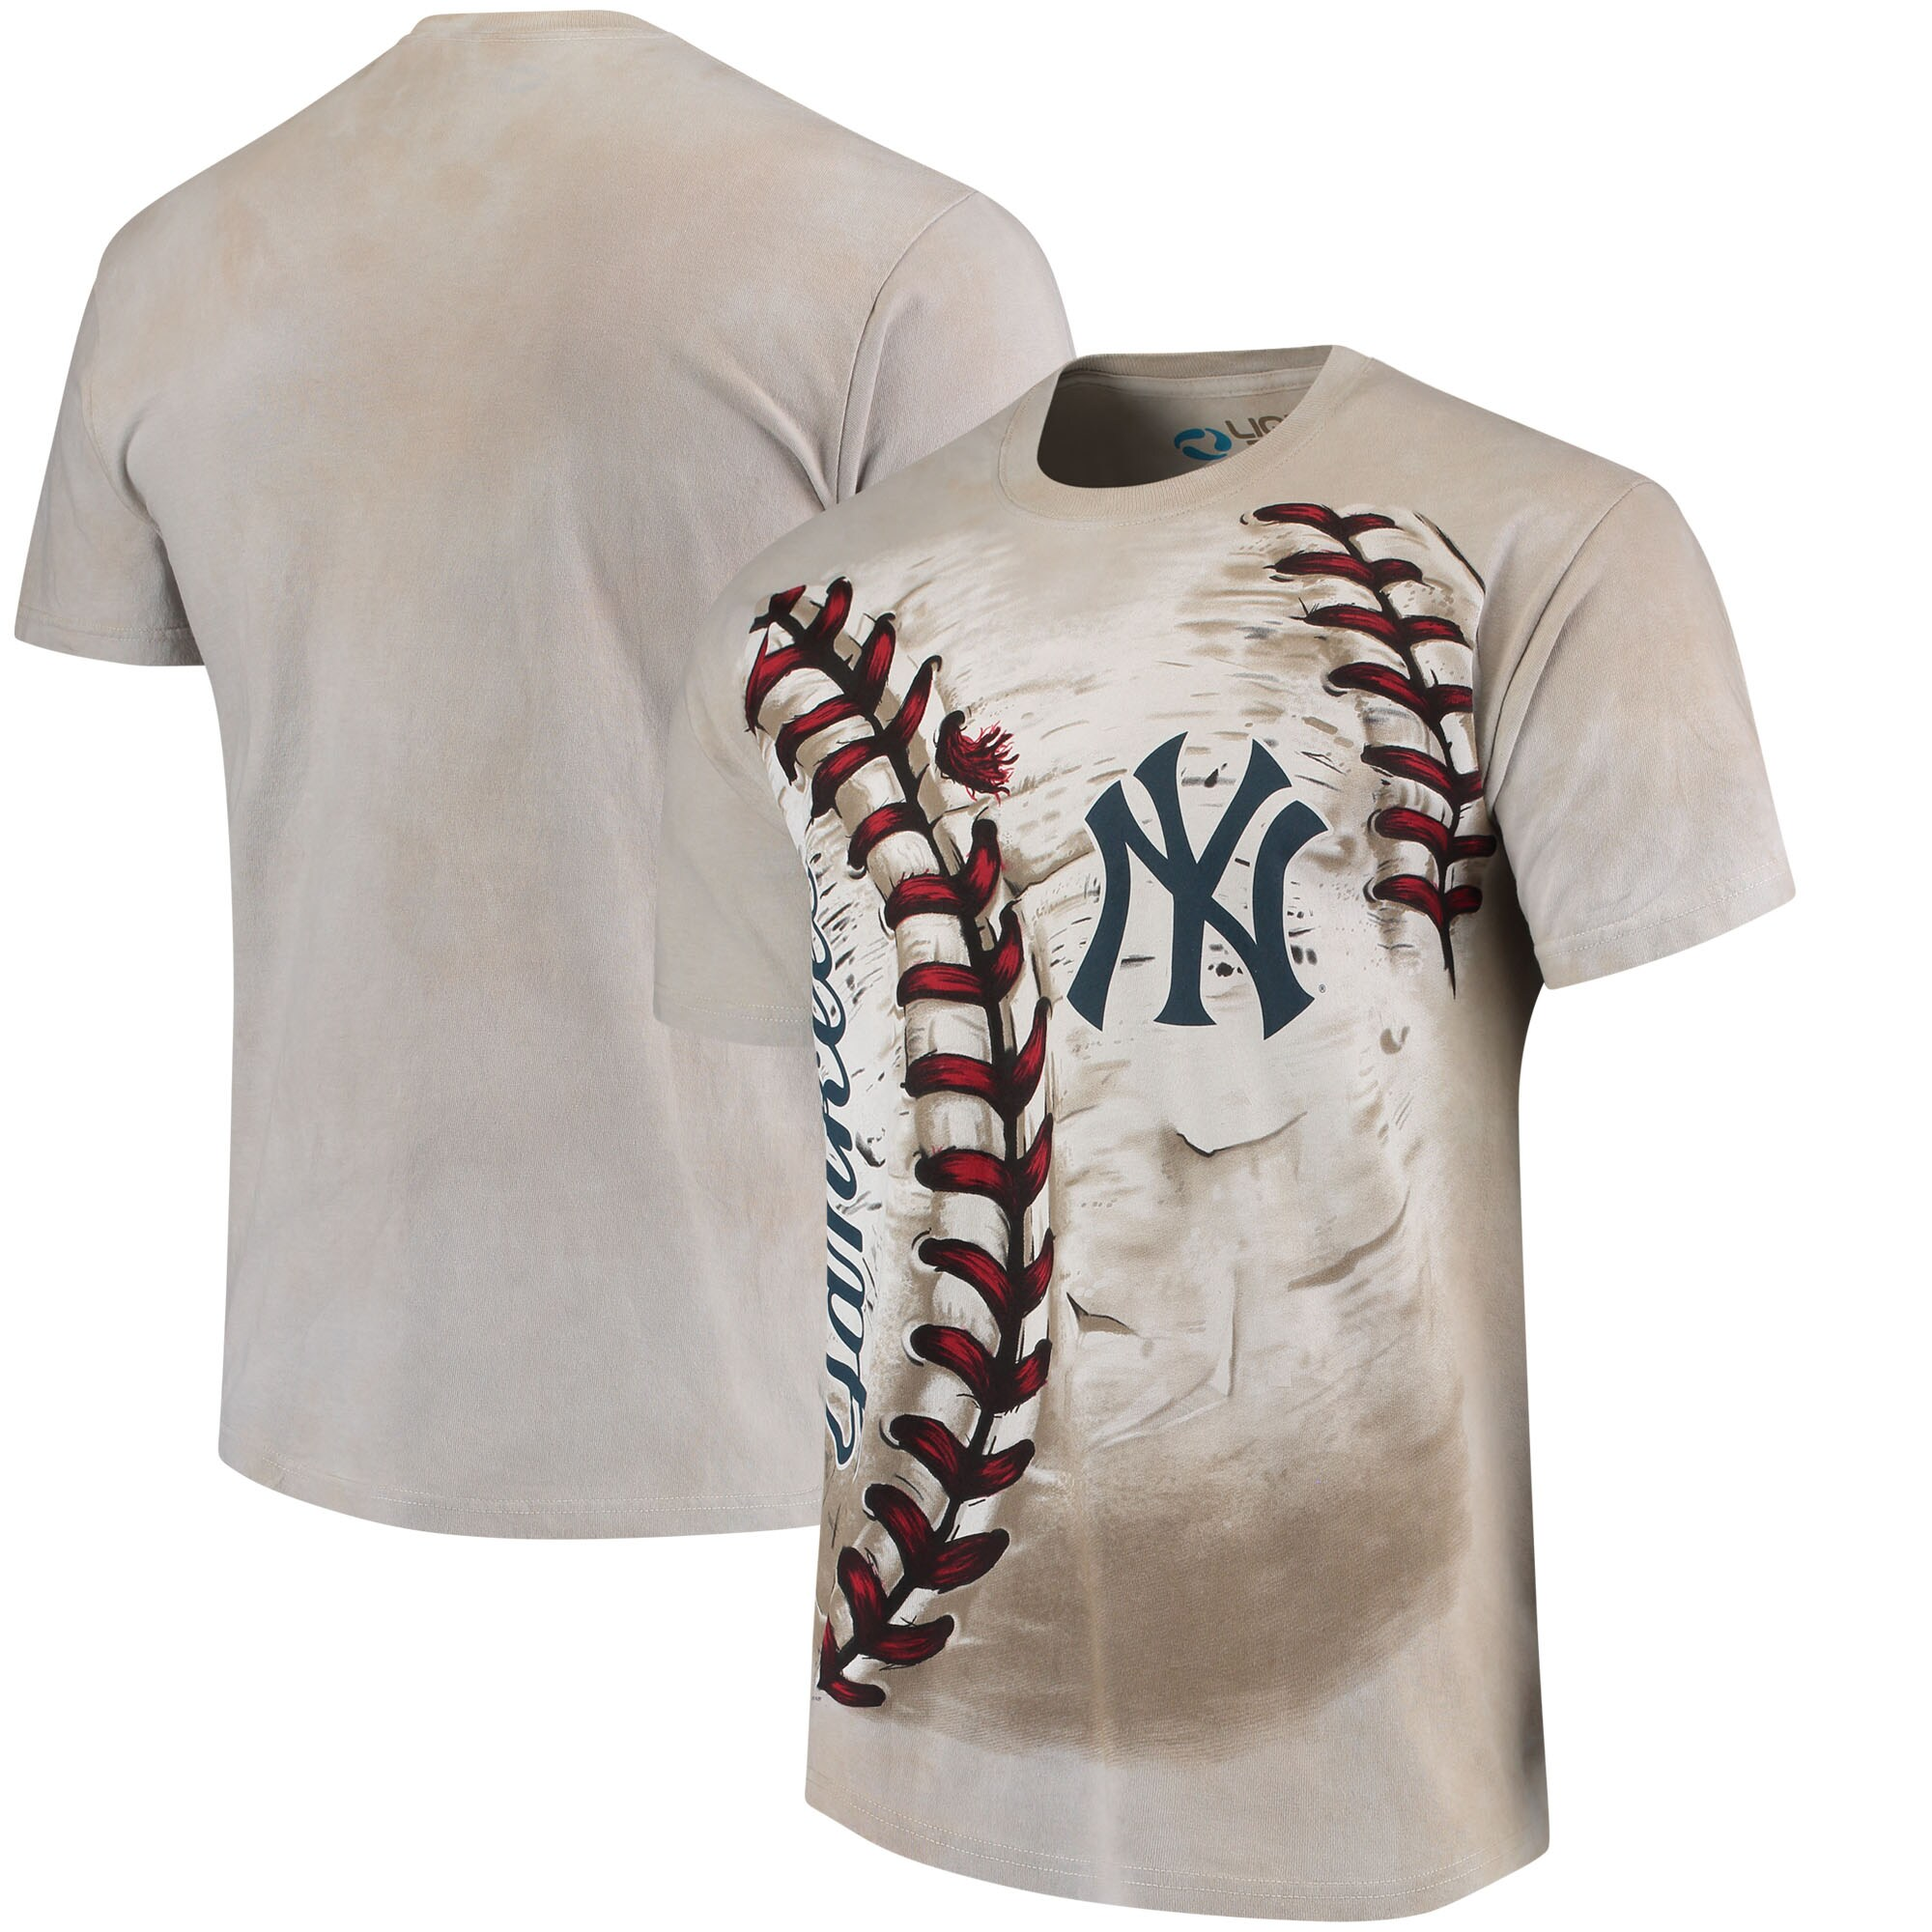 New York Yankees Hardball Tie-Dye T-Shirt - Cream